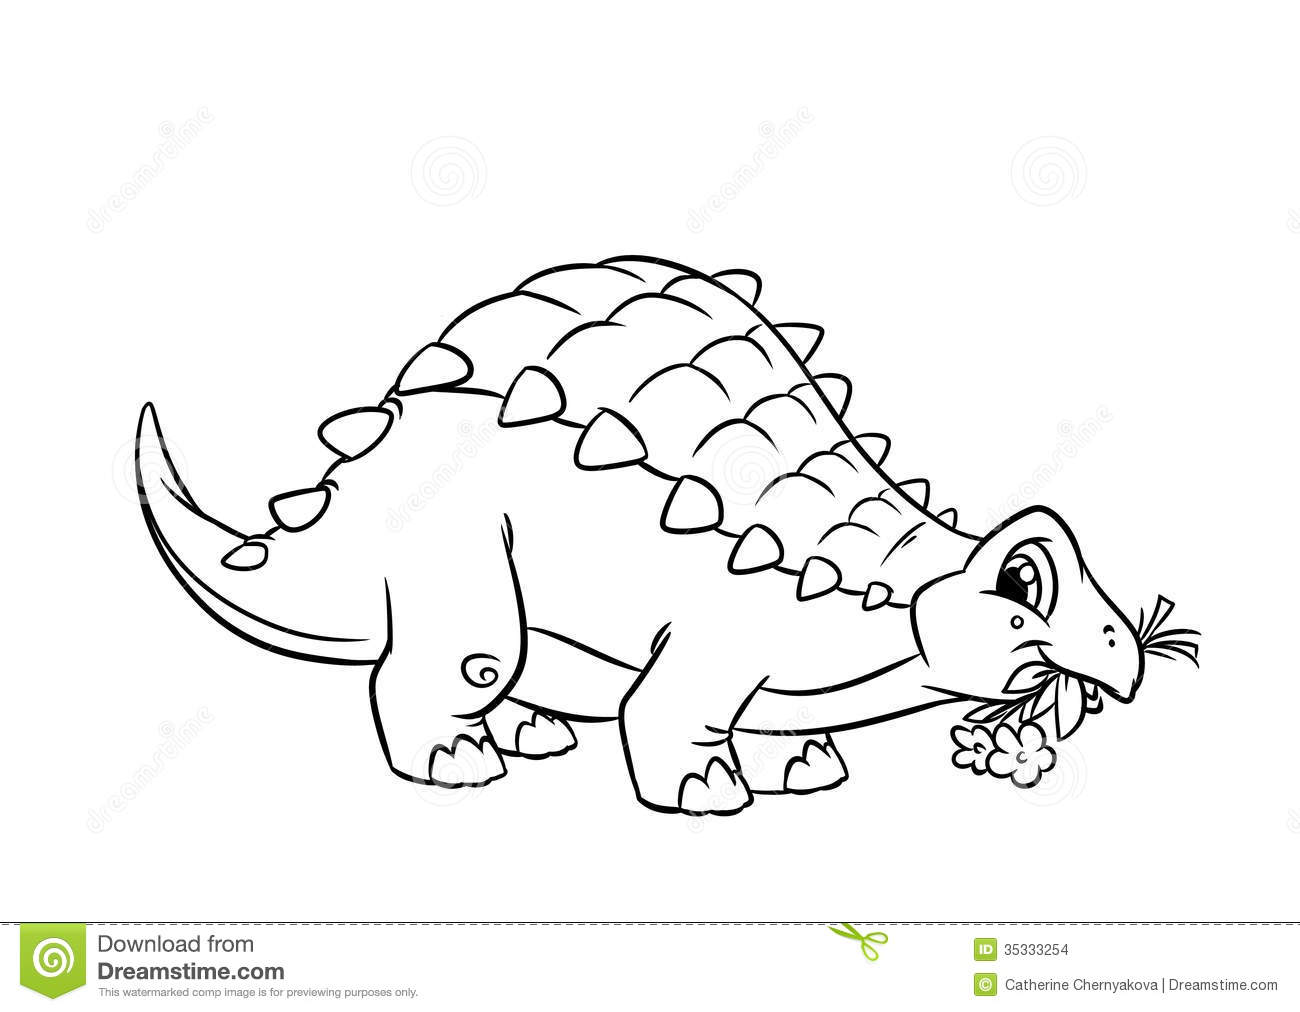 th?id=OIP.EUYJubVmBpwUgRO2Hli_qgEsDp&pid=15.1 along with cute cartoon dinosaur coloring pages 1 on cute cartoon dinosaur coloring pages also cute cartoon dinosaur coloring pages 2 on cute cartoon dinosaur coloring pages also with cute cartoon dinosaur coloring pages 3 on cute cartoon dinosaur coloring pages also cute cartoon dinosaur coloring pages 4 on cute cartoon dinosaur coloring pages